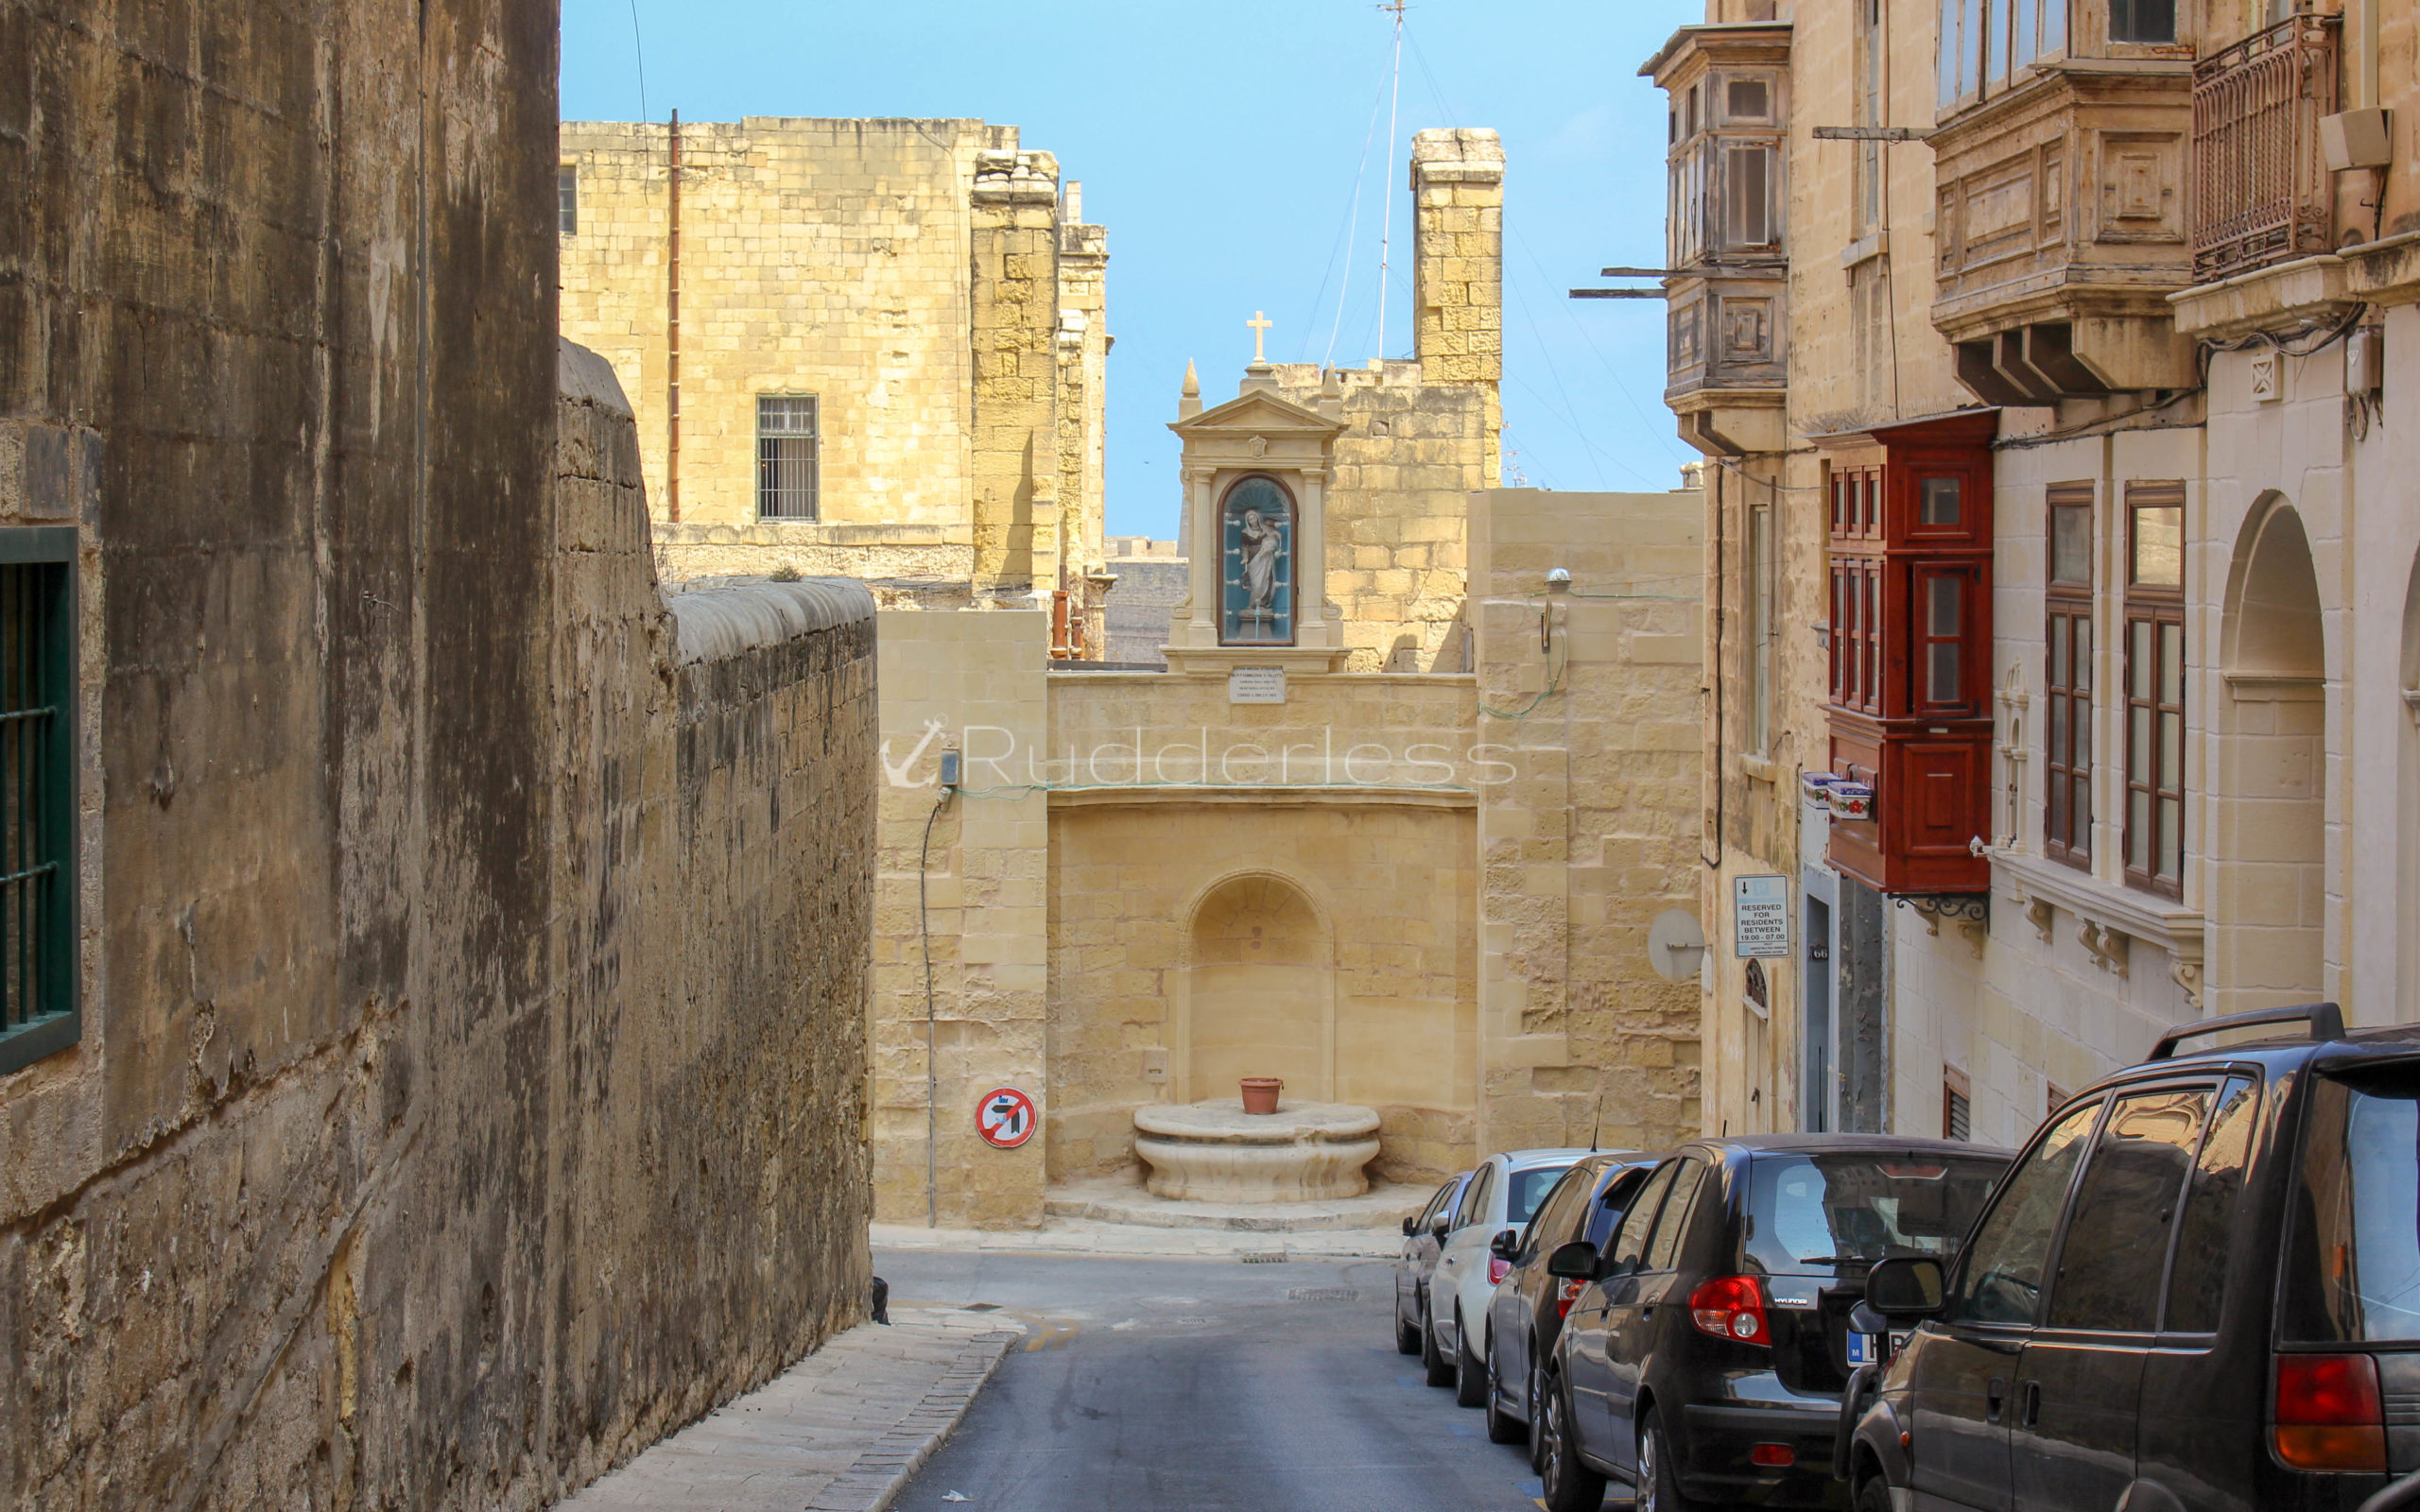 What to see in malta in 3 days